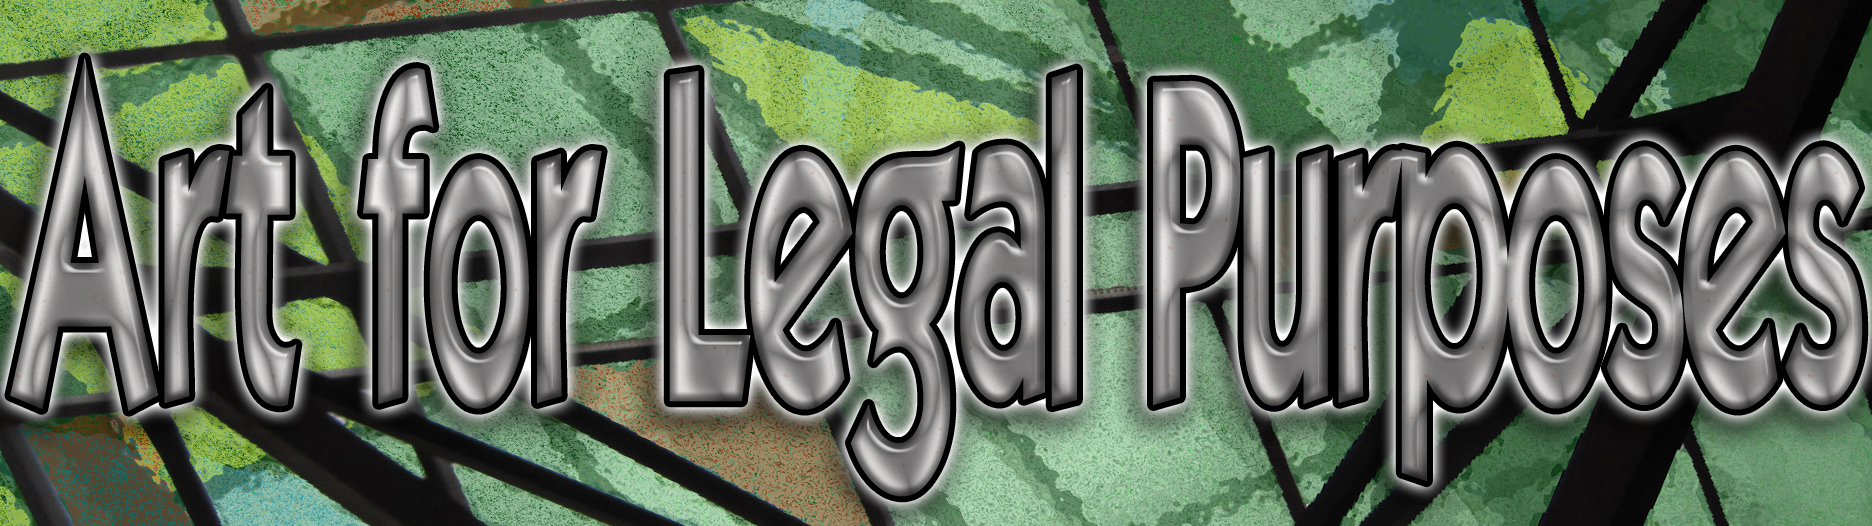 HED - Art for Legal Purposes.jpg